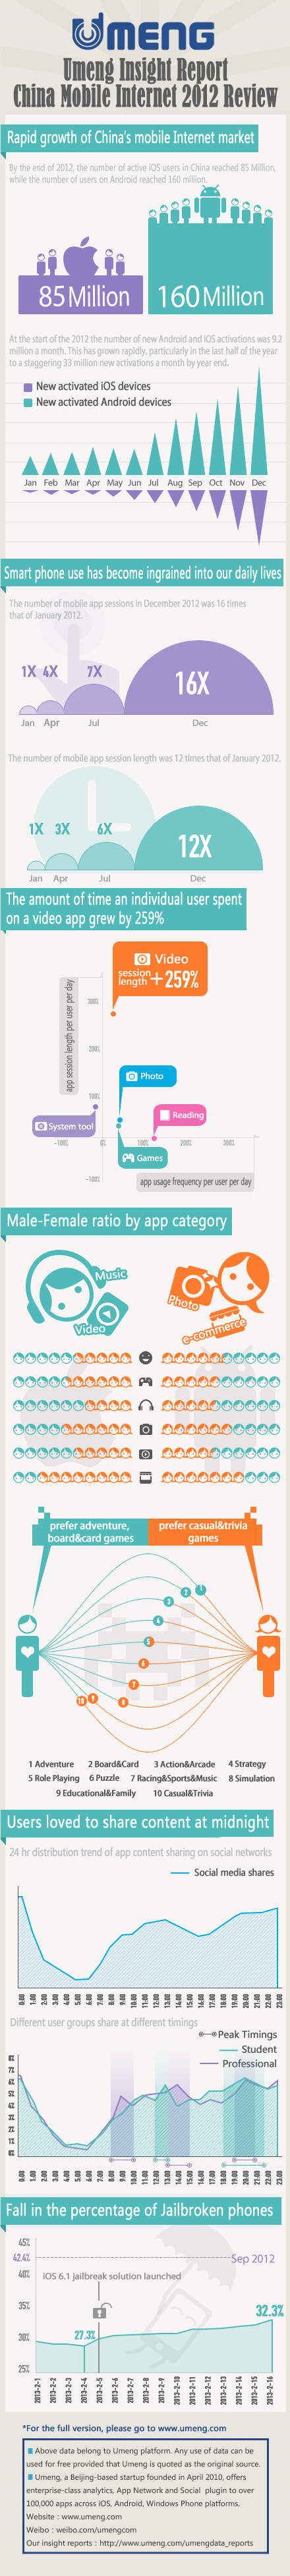 China 2012, active Android iOS users